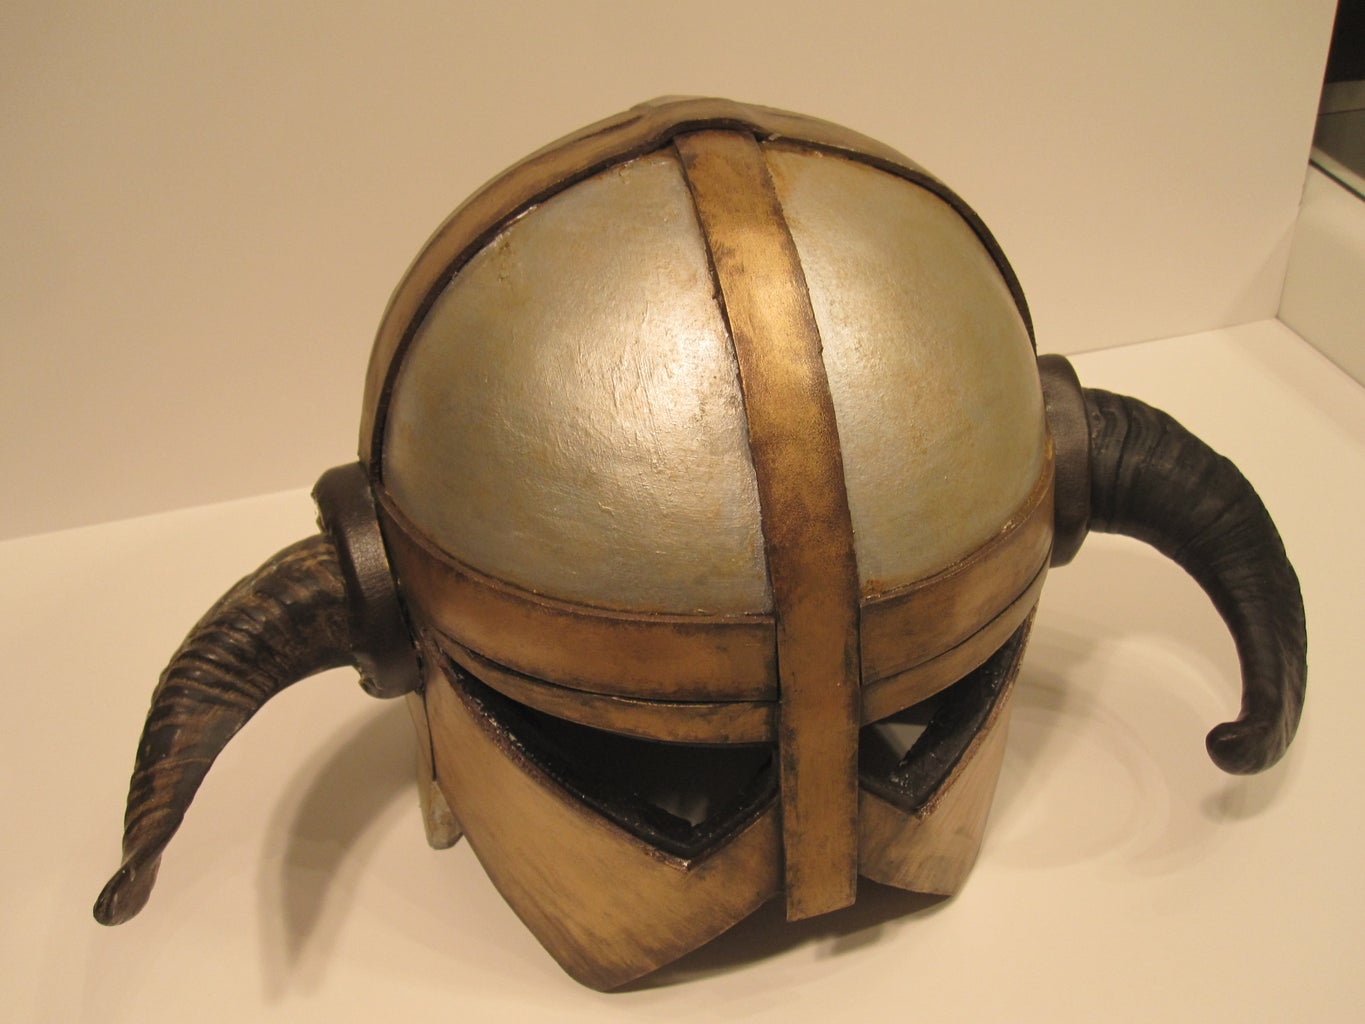 Paint the Helm